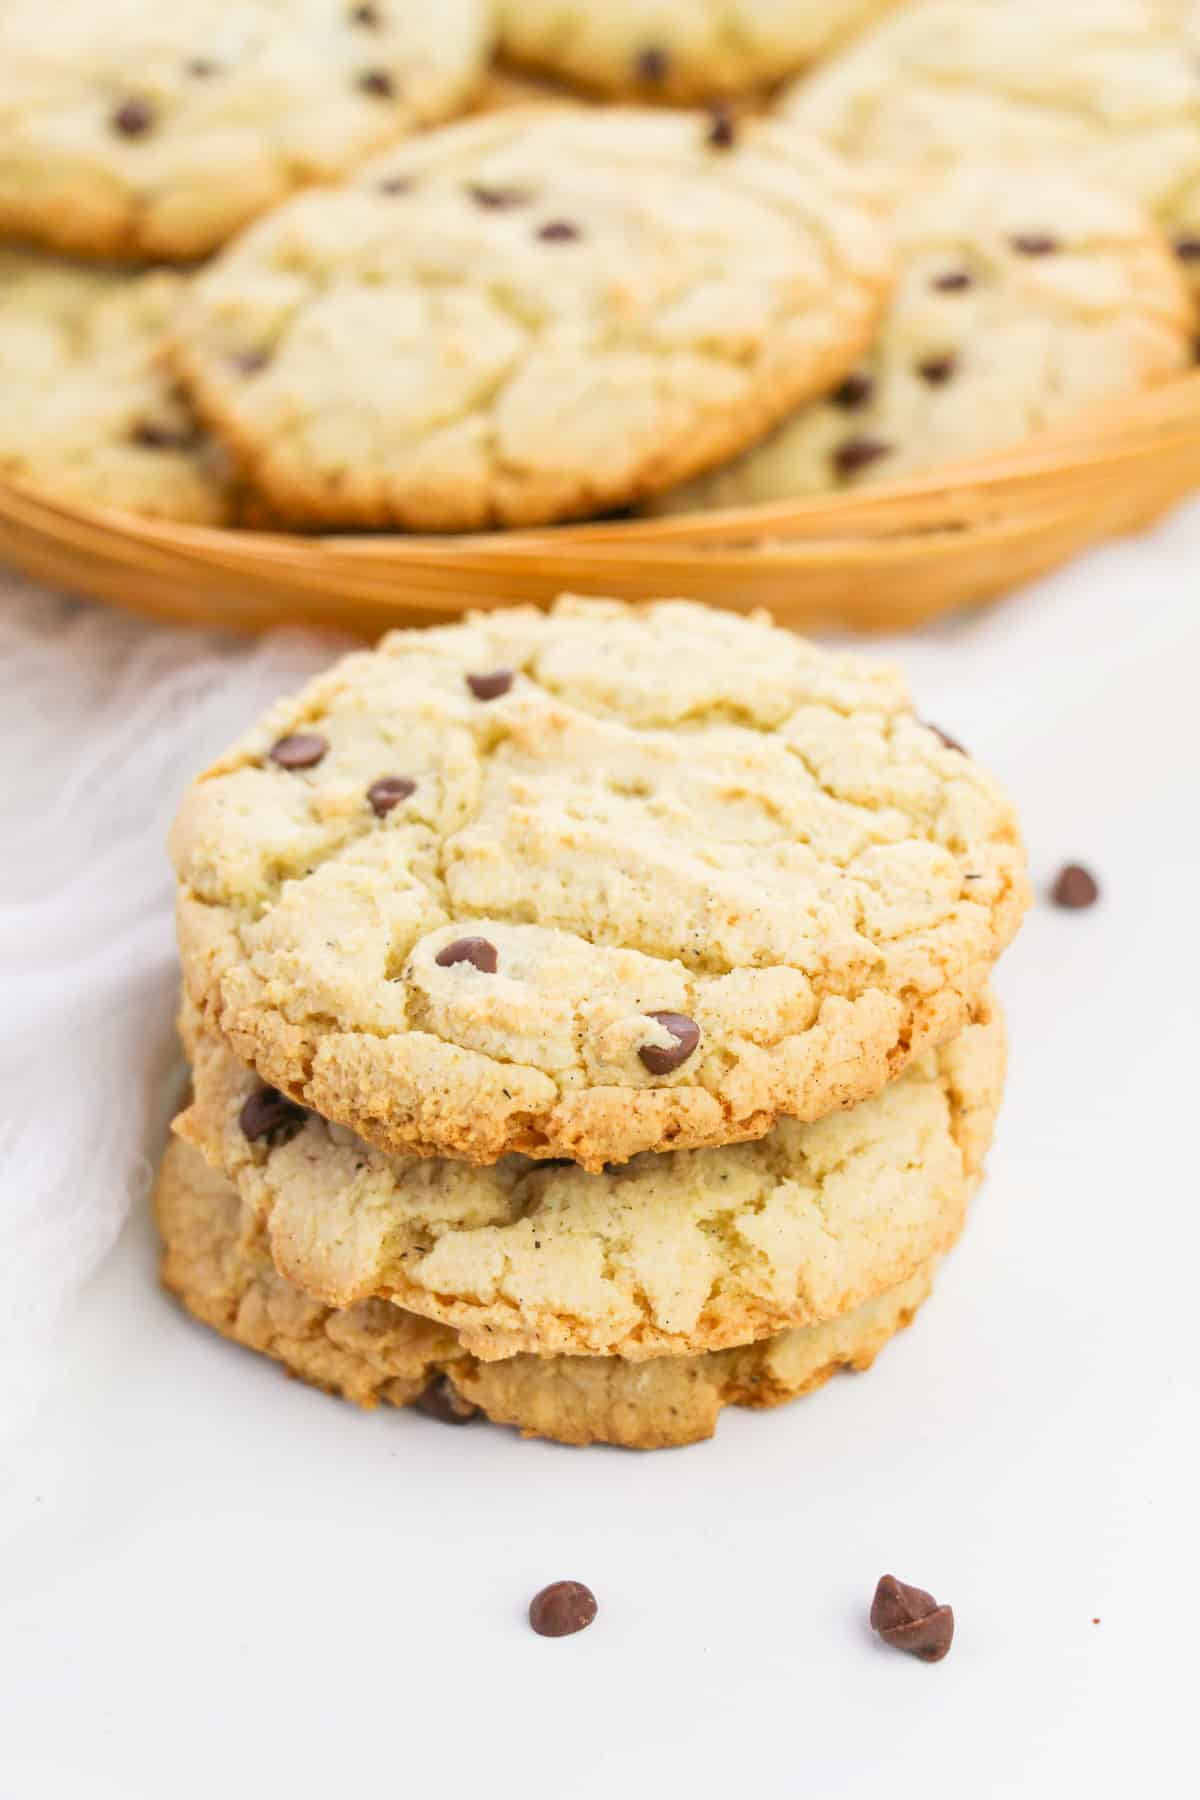 Cake Mix Chocolate Chip Cookies stacked on top of one anther with basket of additional cookies in the background and mini chocolate chips scattered on table